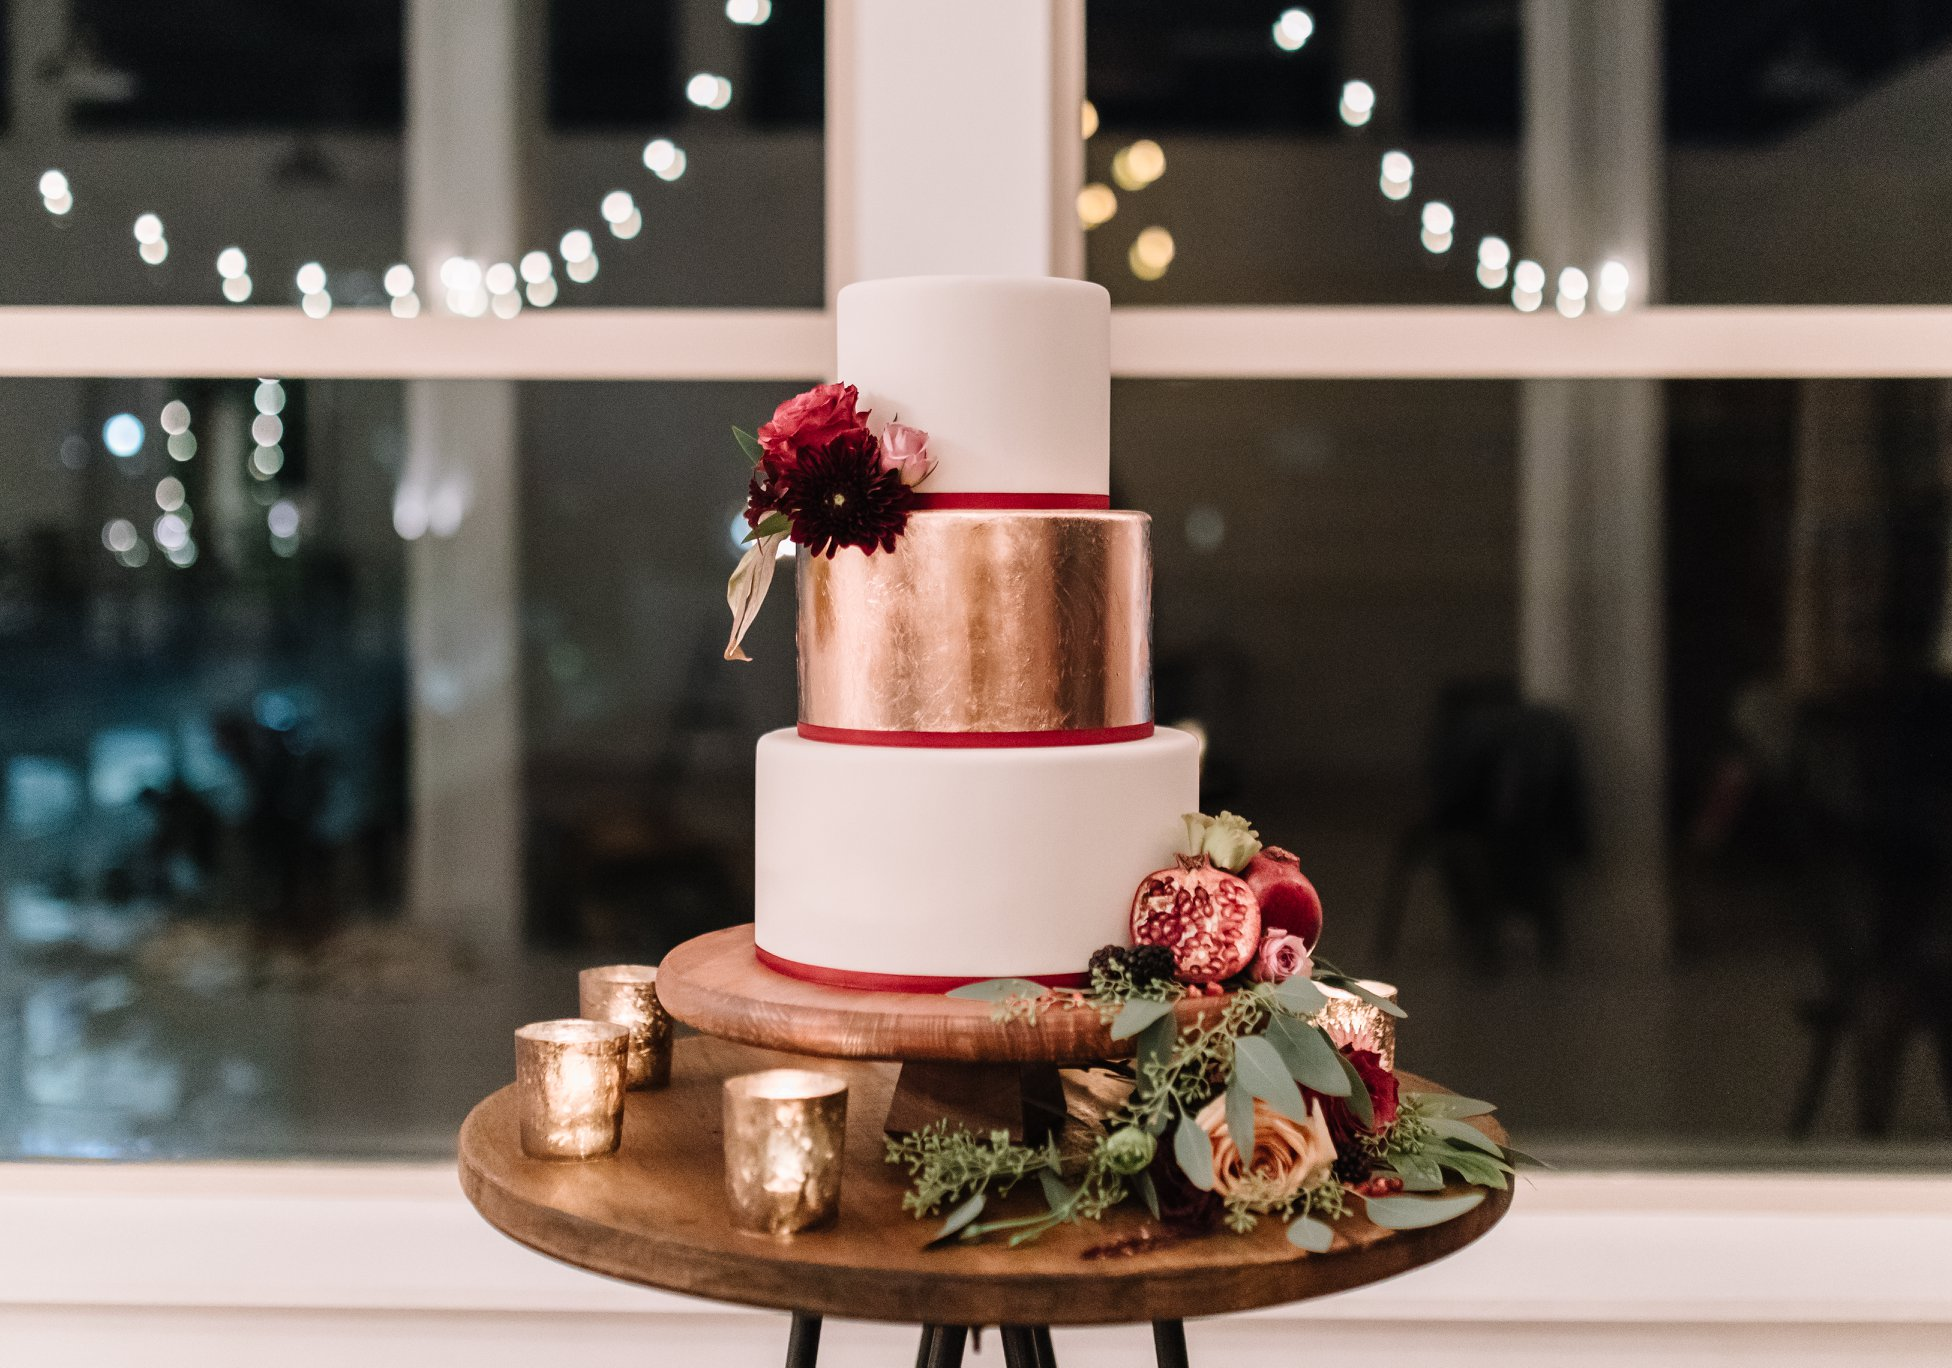 Wedding Cakes in Utah - Sweet Cravings by Marcia Hill_009.jpg